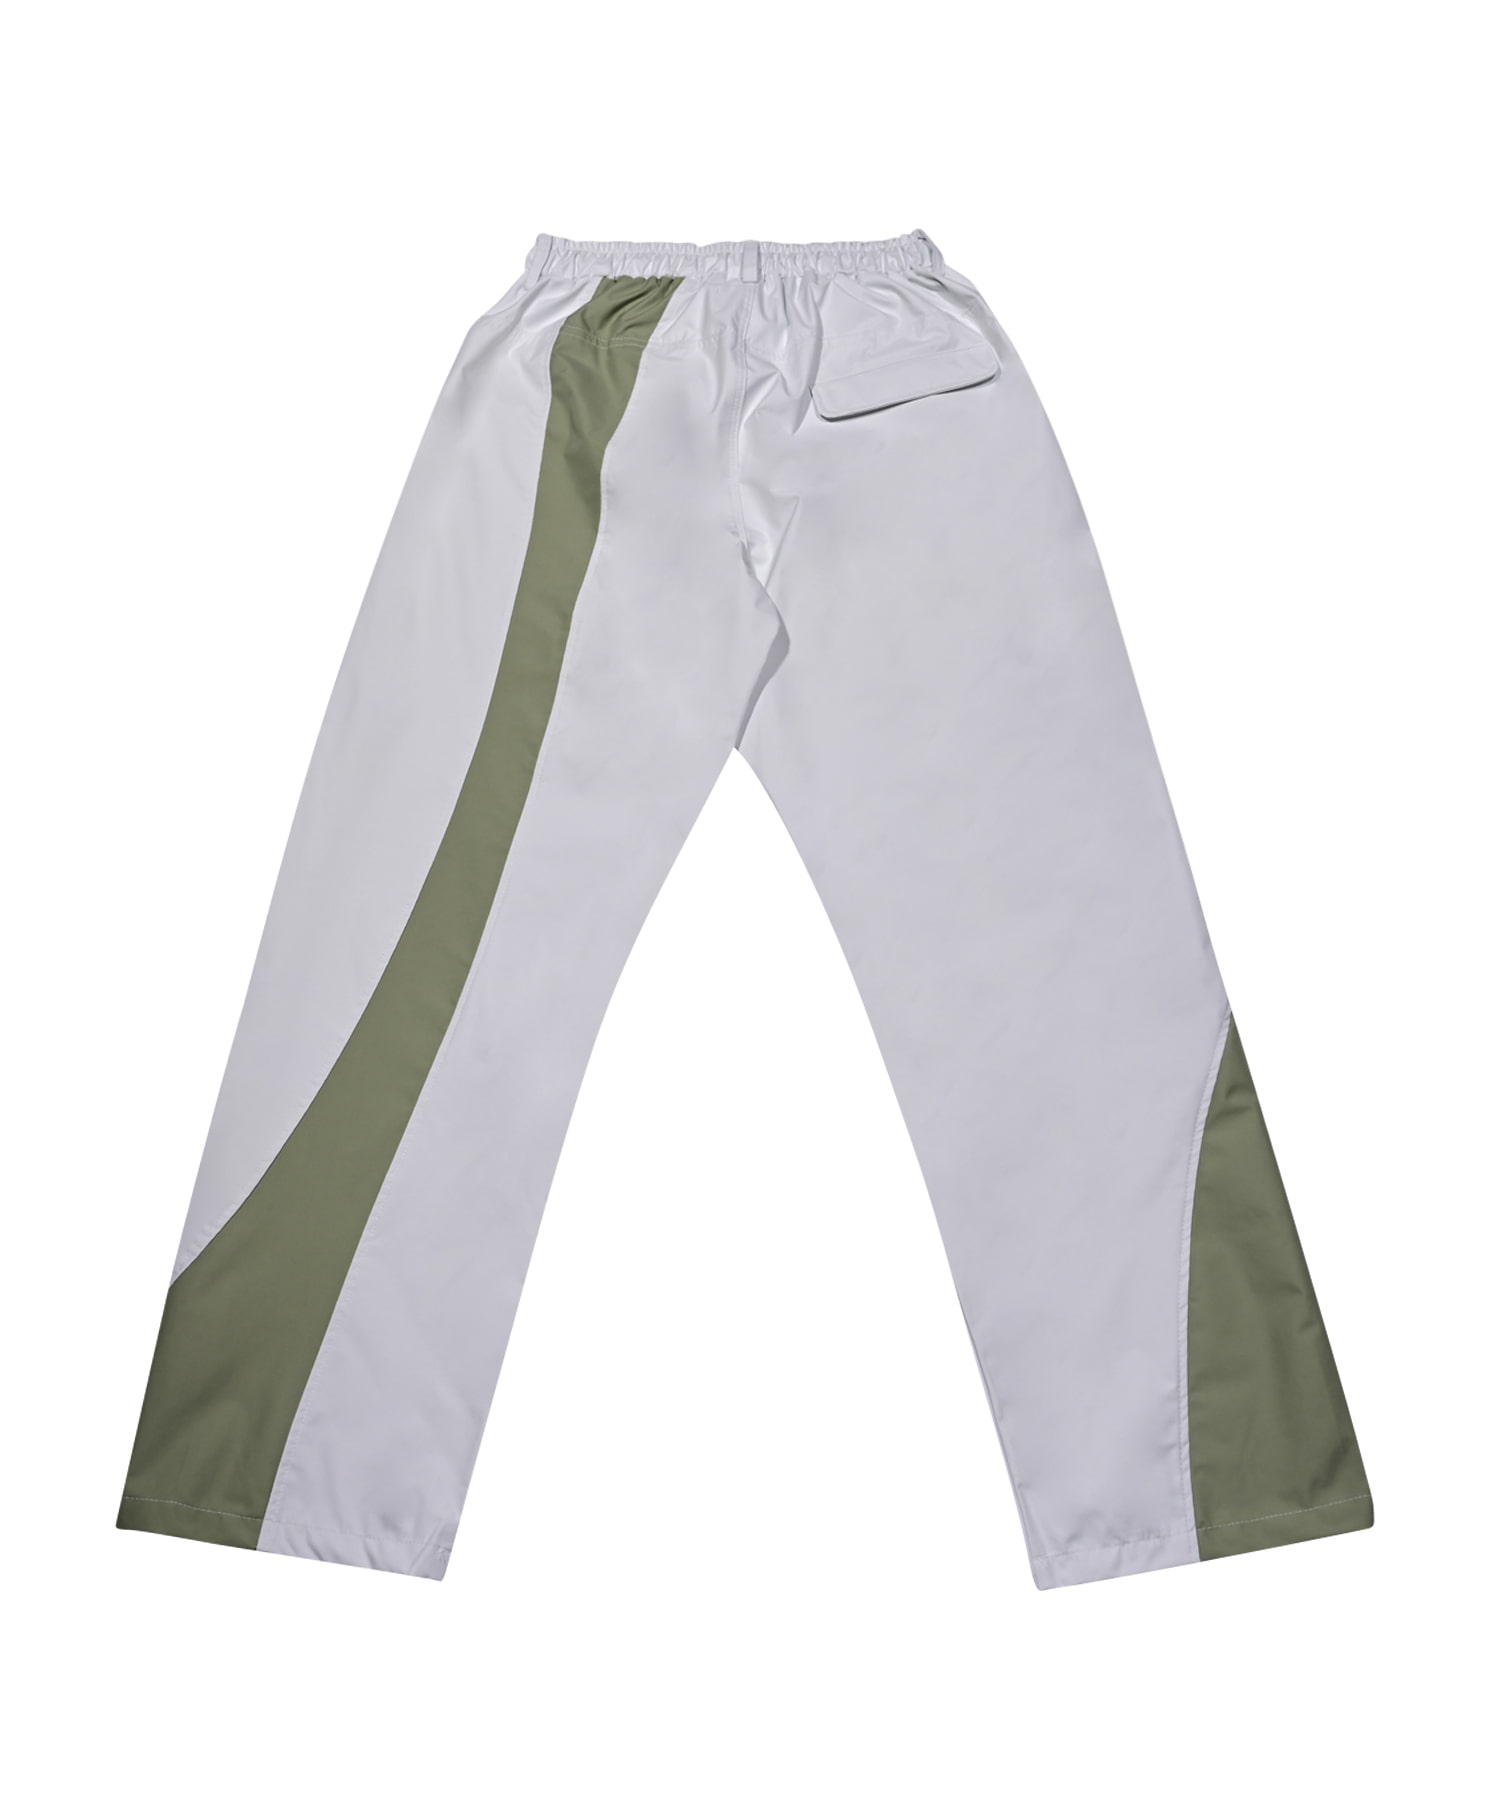 WIND BLOCK PANTS WHITE